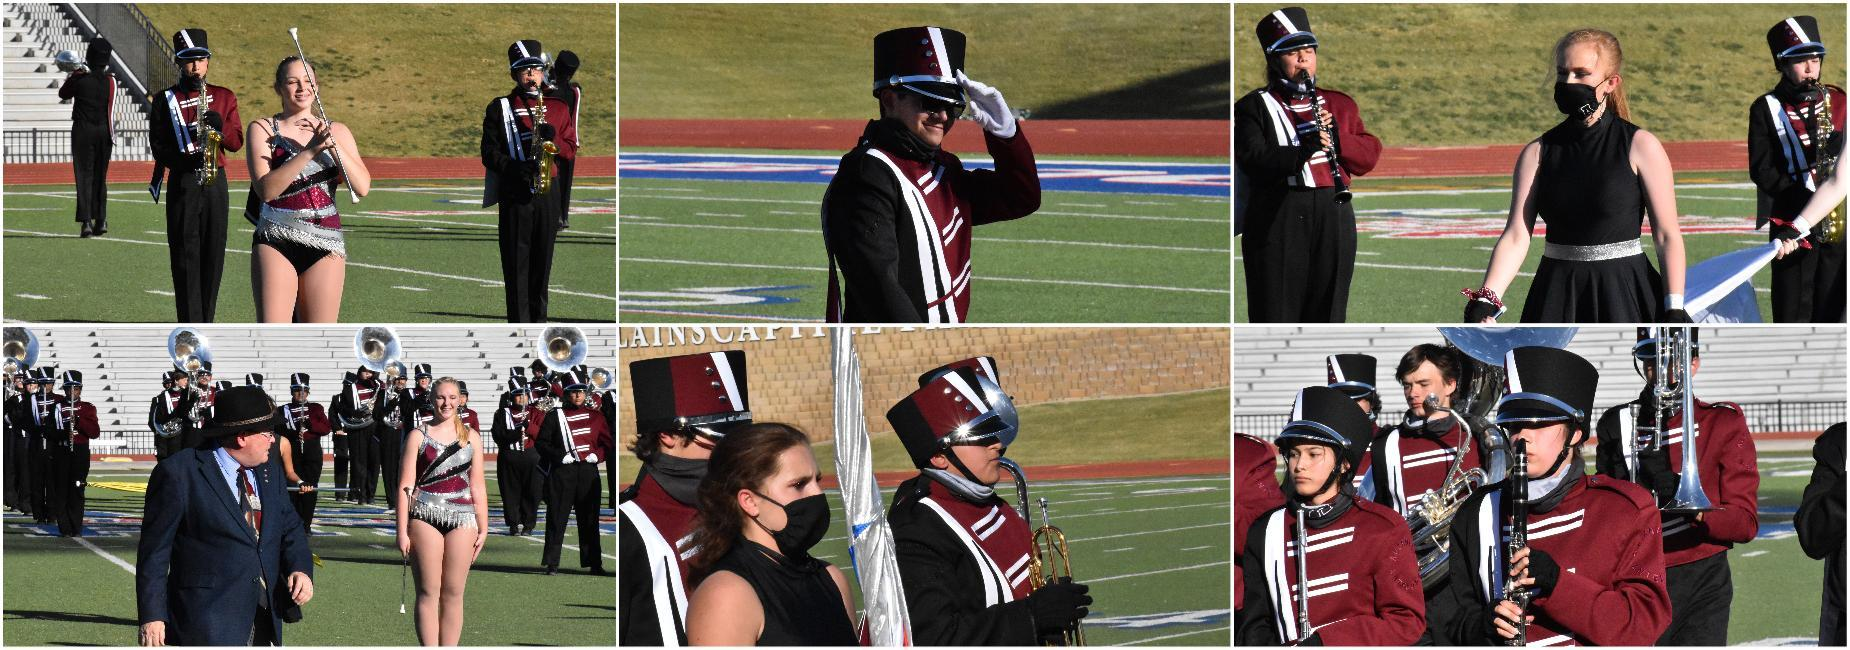 Band members prepare for marching contest